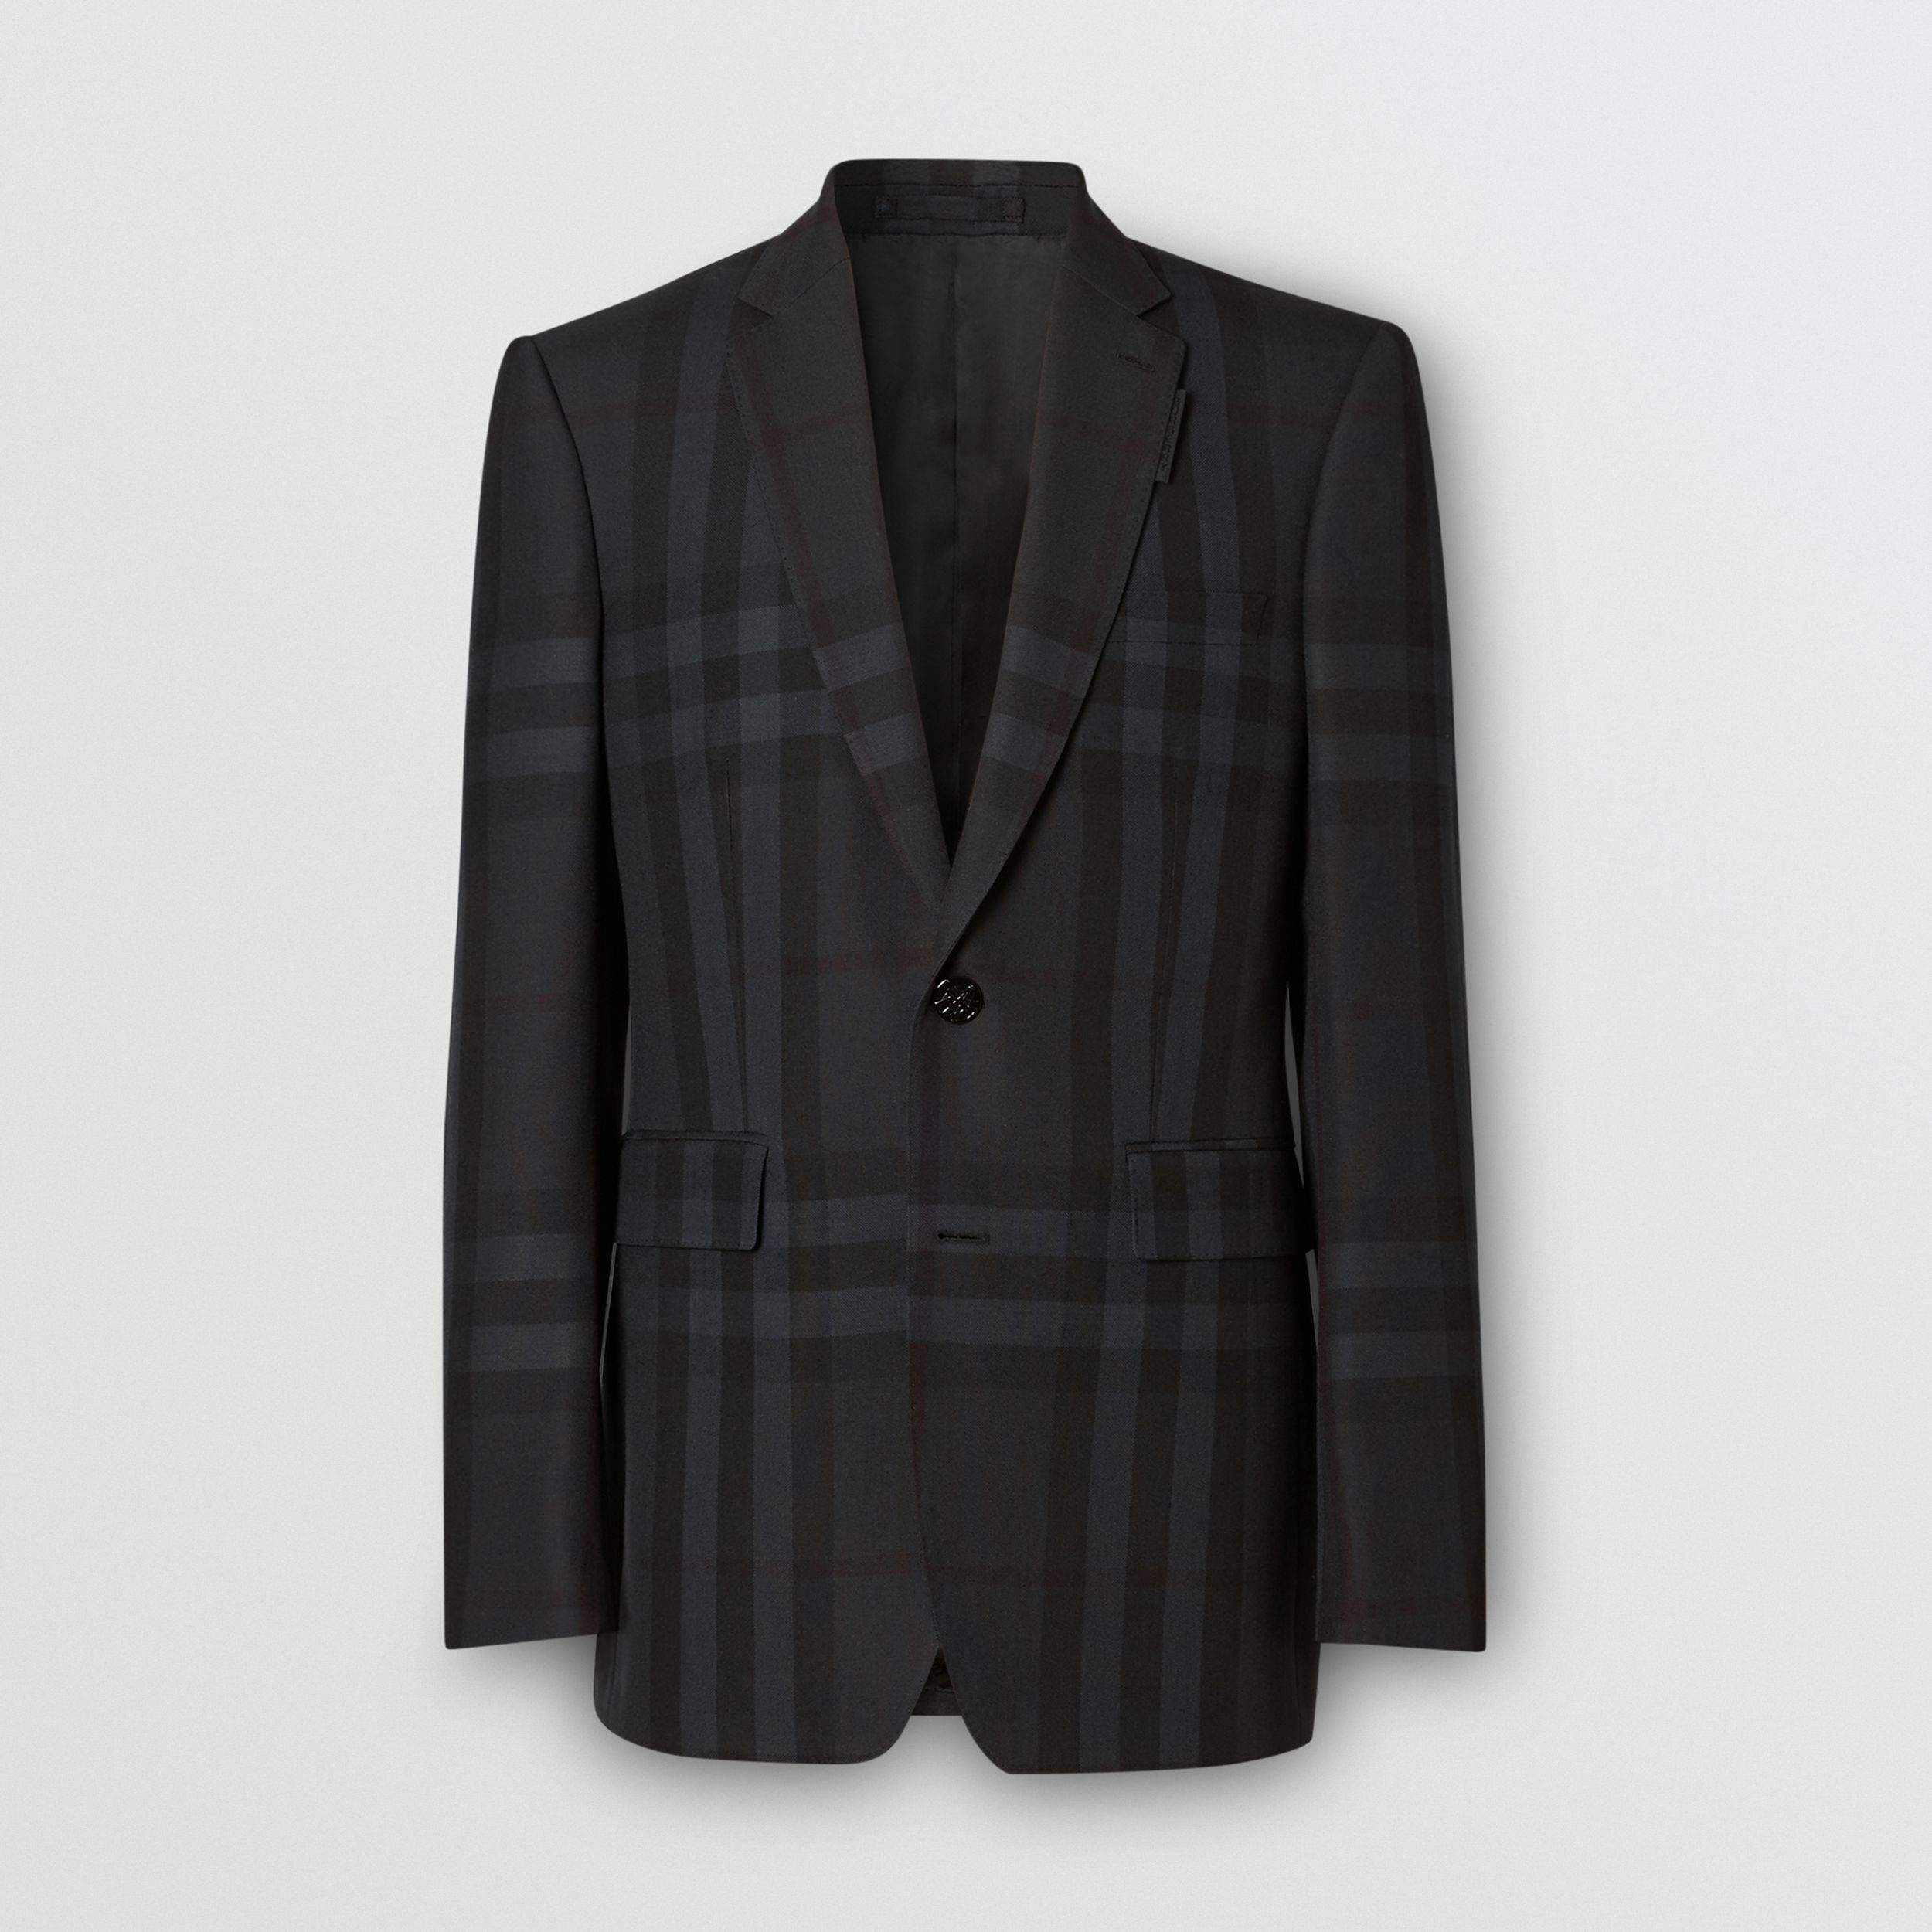 Classic Fit Check Wool Tailored Jacket in Charcoal - Men | Burberry - 4